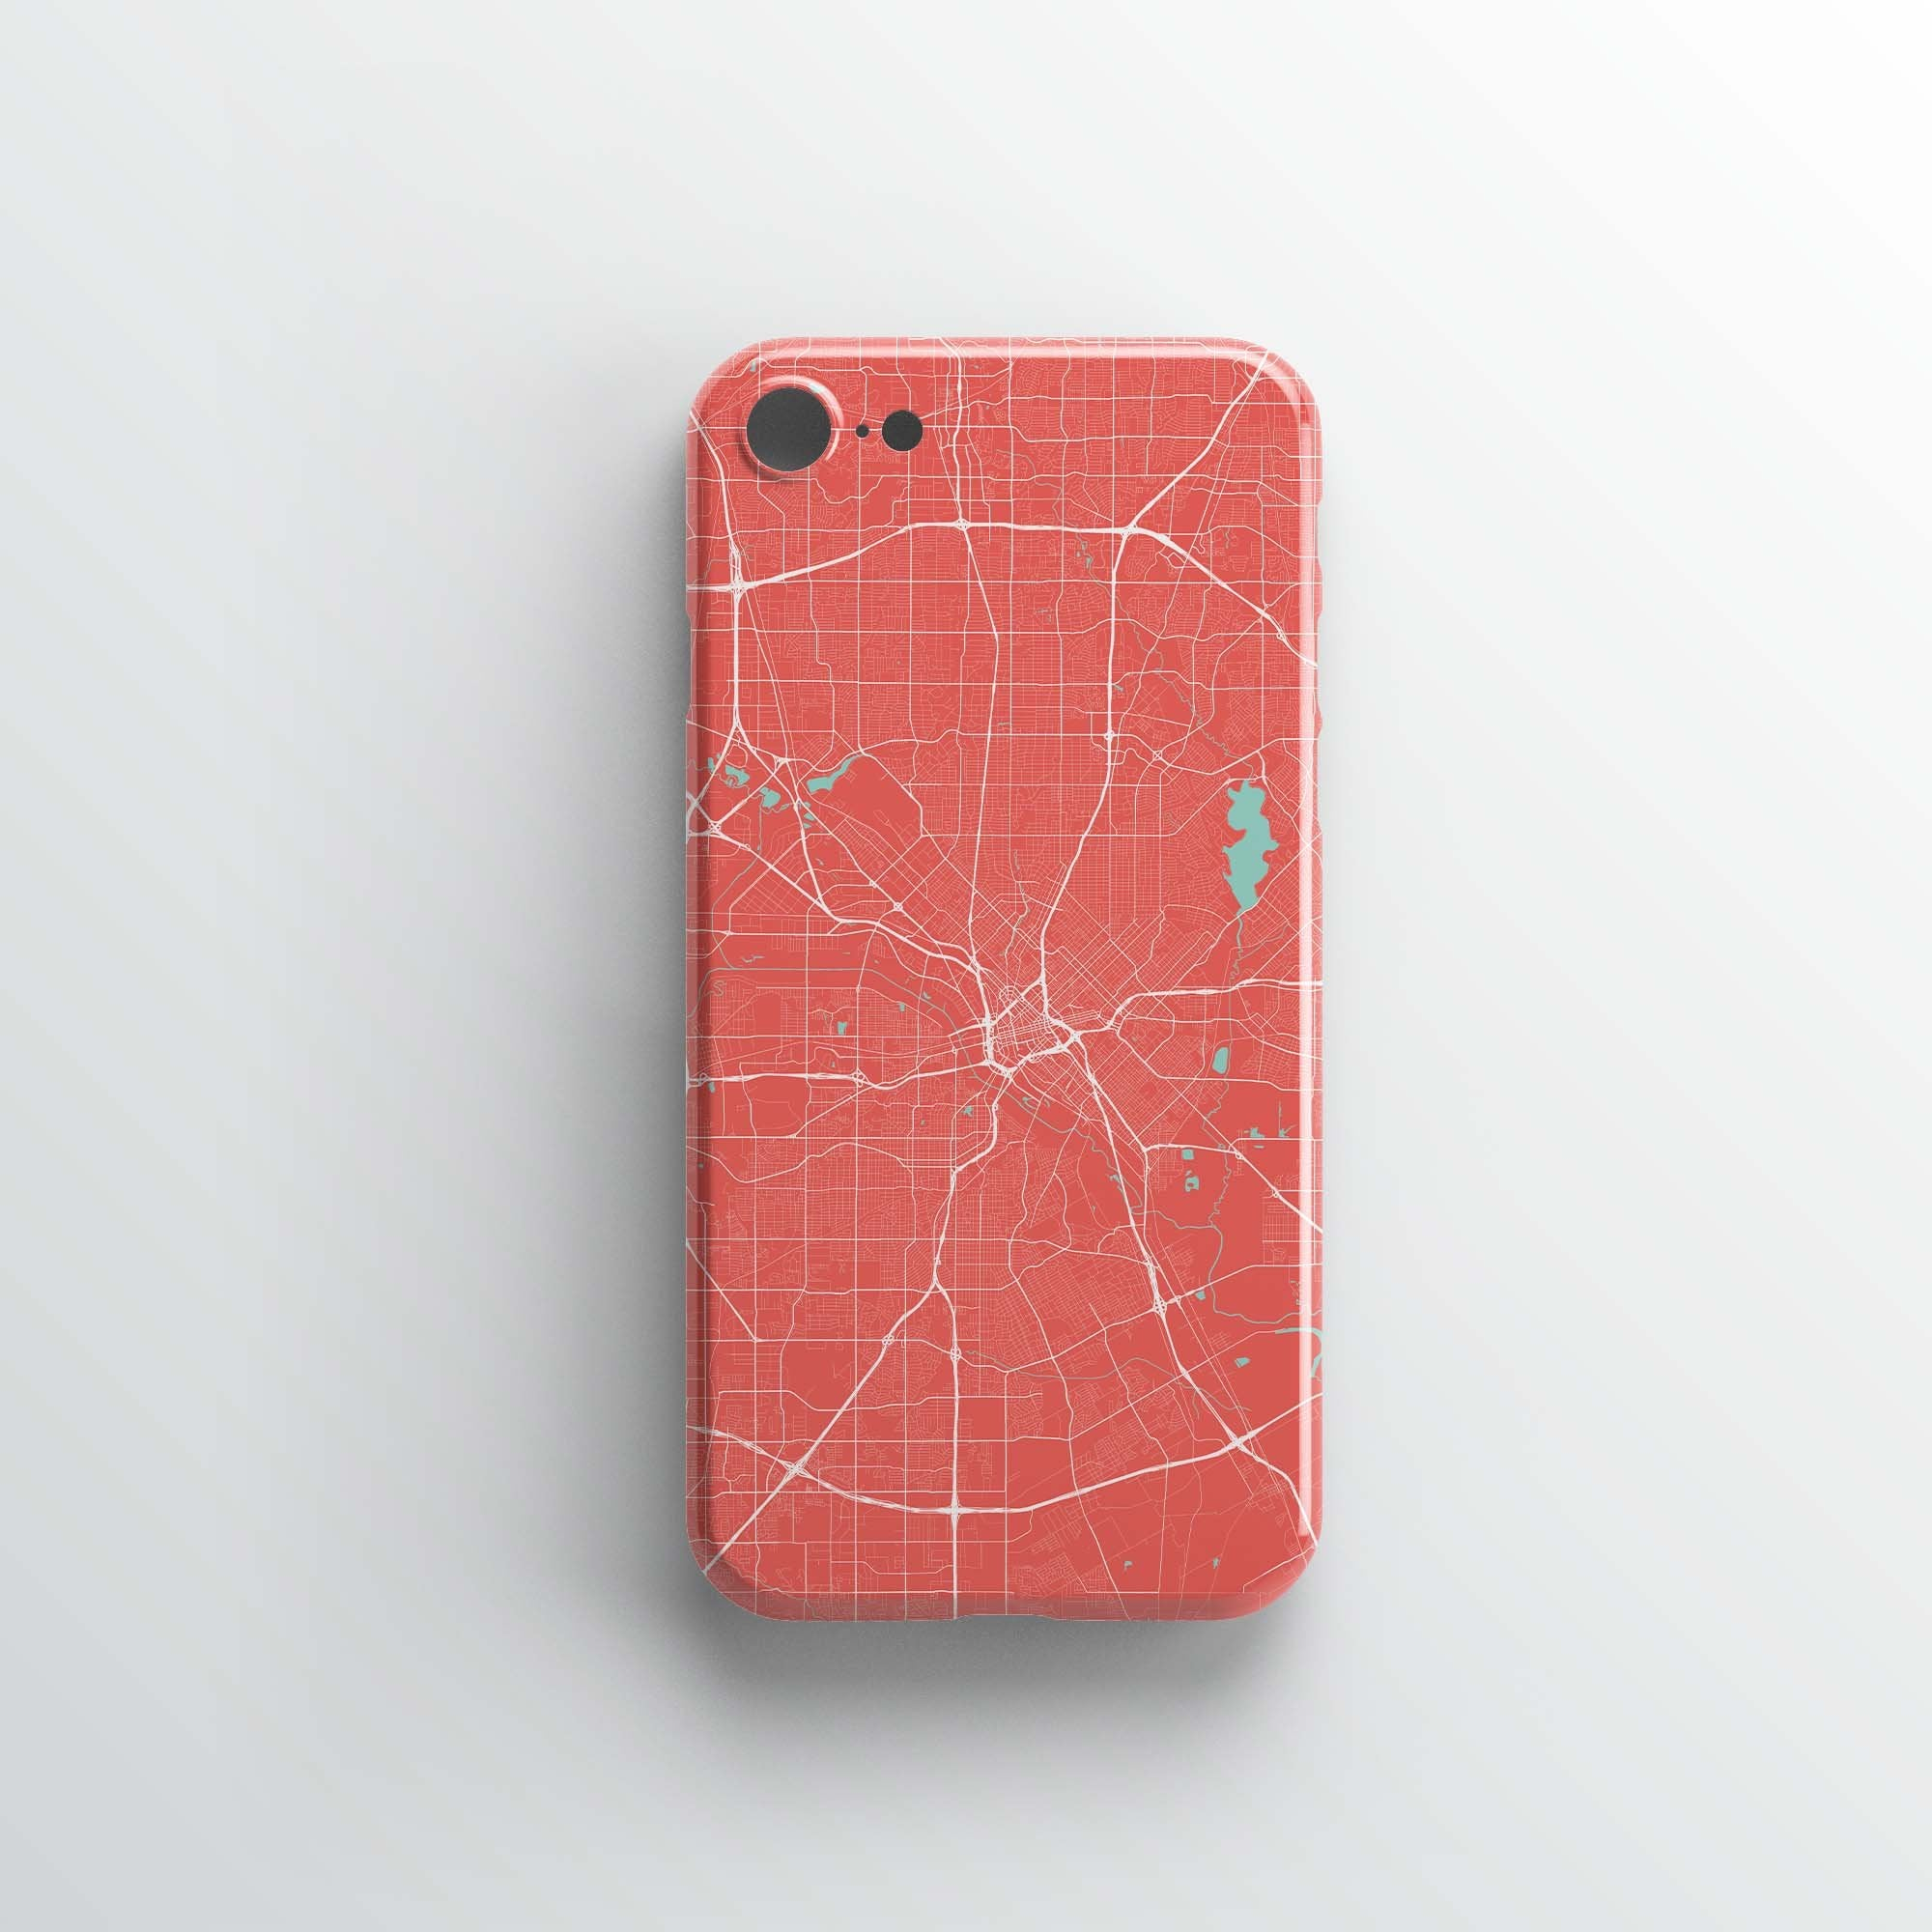 Dallas City iPhone Case - Point Two Design